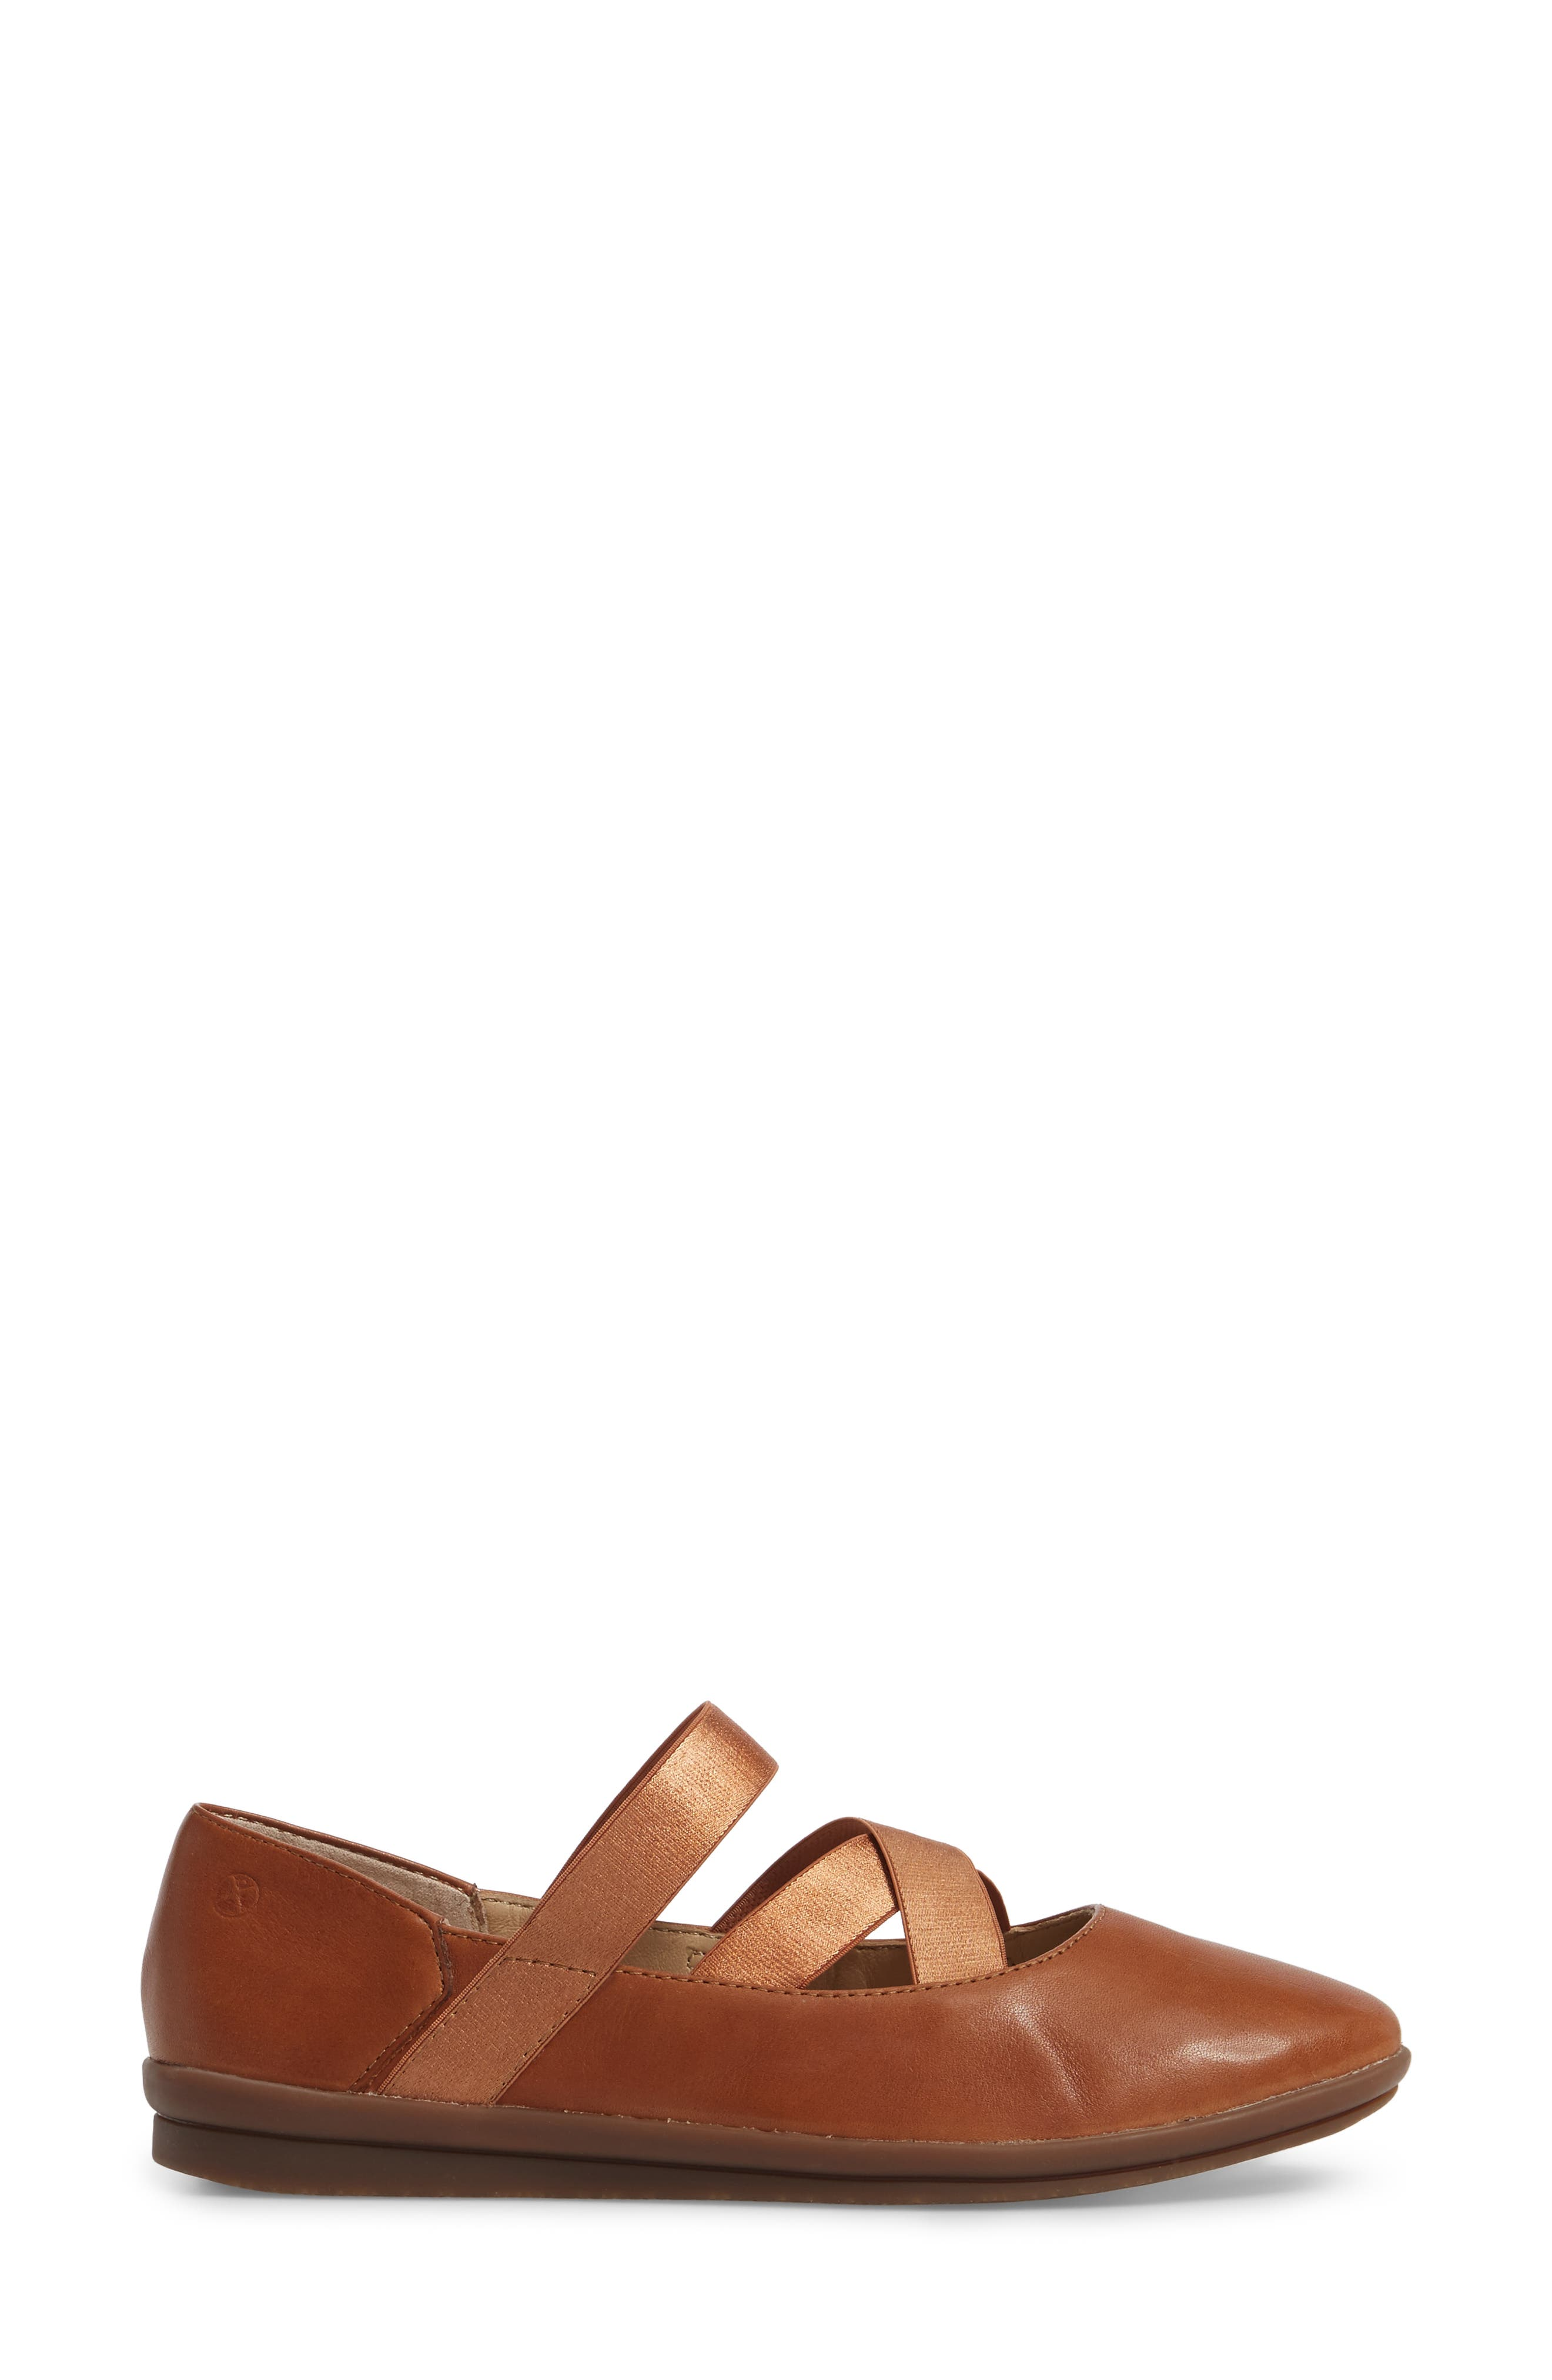 Alternate Image 3  - Hush Puppies® Meree Madrine Cross Strap Flat (Women)